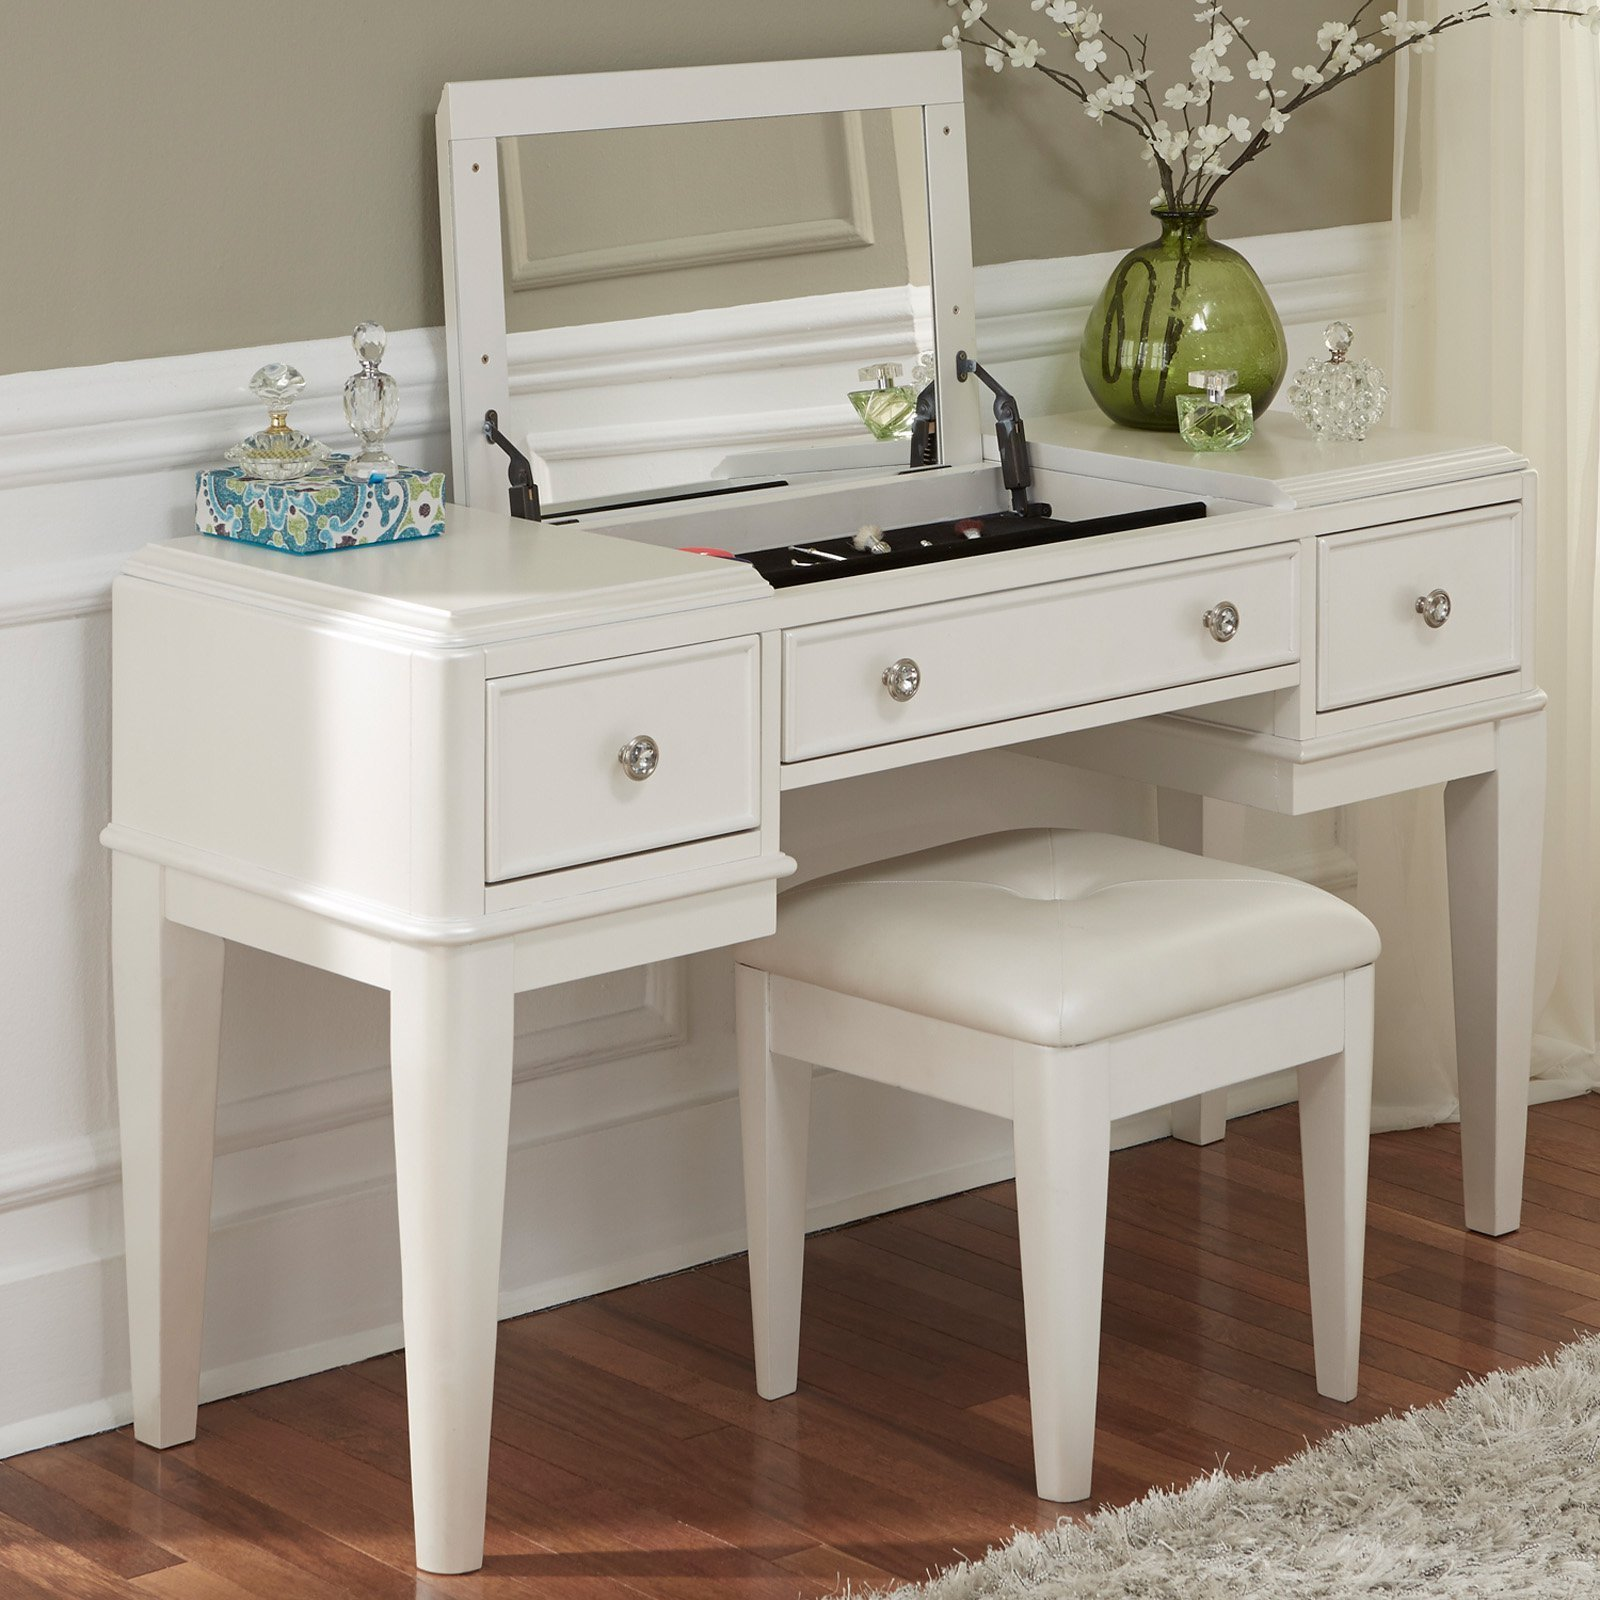 Best Liberty Furniture Stardust Bedroom Vanity With Optional With Pictures